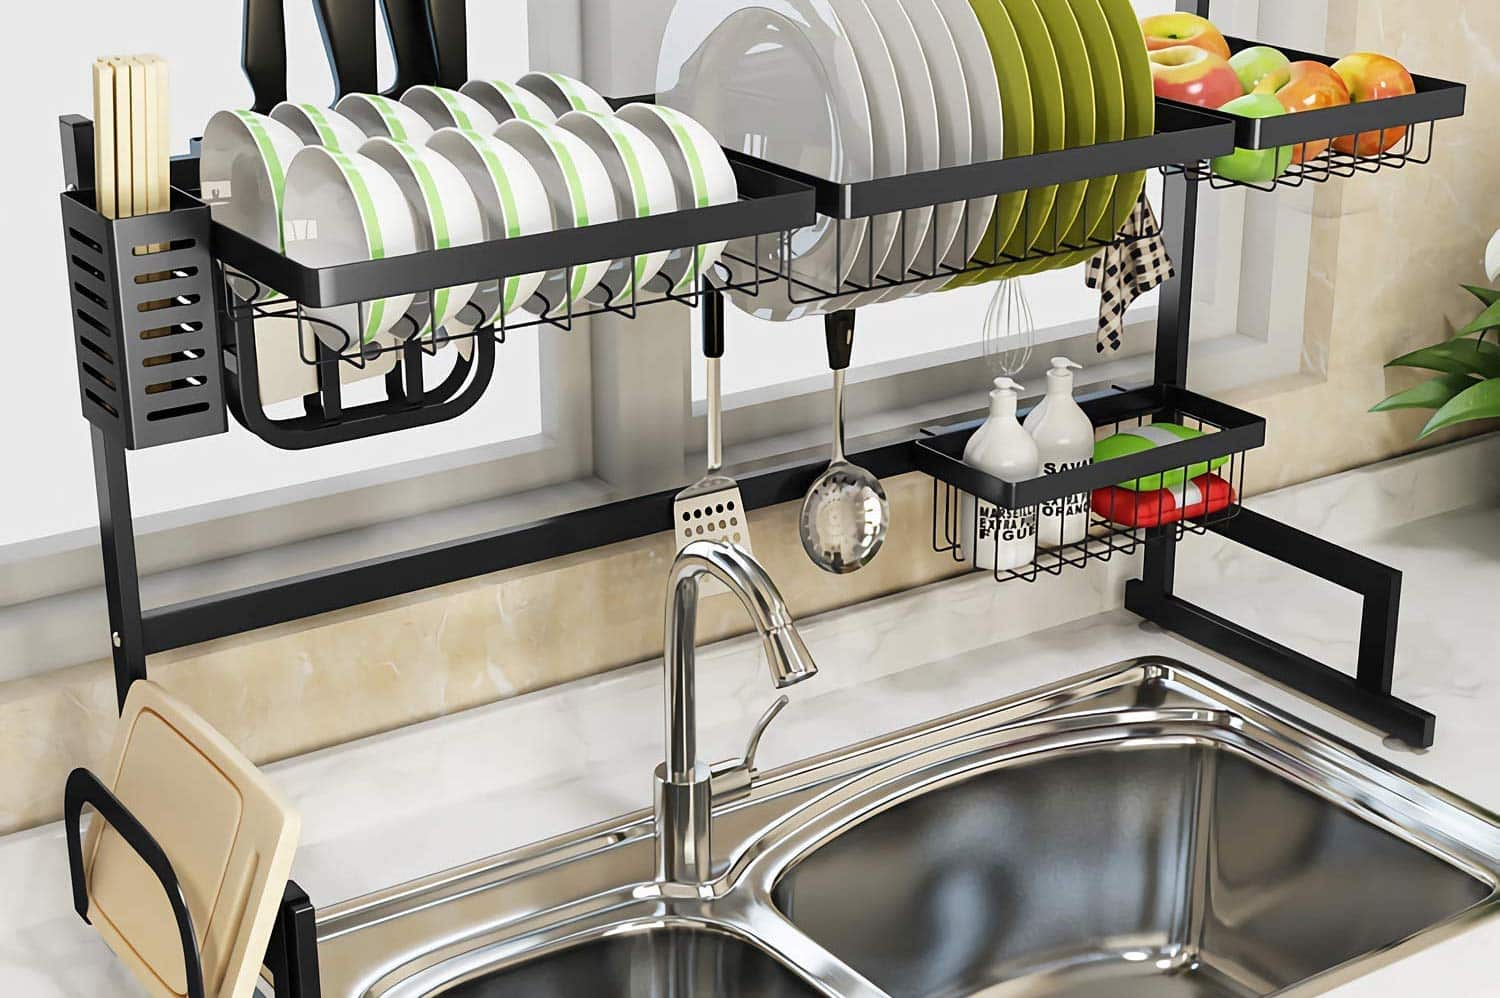 Top 10 Best Over The Sink Dish Racks In 2020 Reviews Buyer S Guide